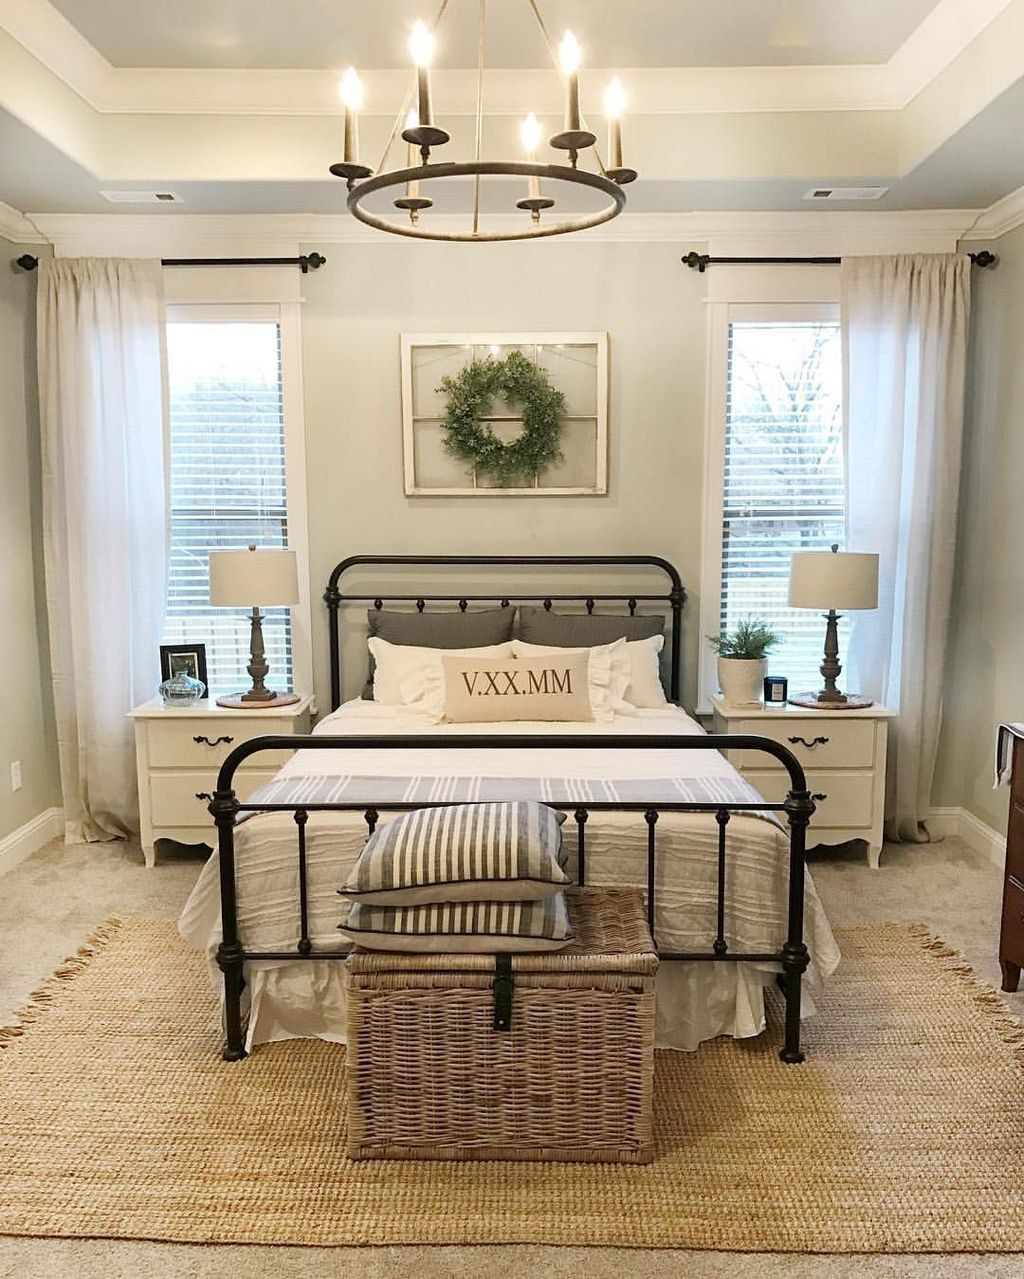 classic and vintage farmhouse bedroom ideas 54 vintage farmhouse rh pinterest co uk farmhouse bedroom images farmhouse bedroom ideas metal beds